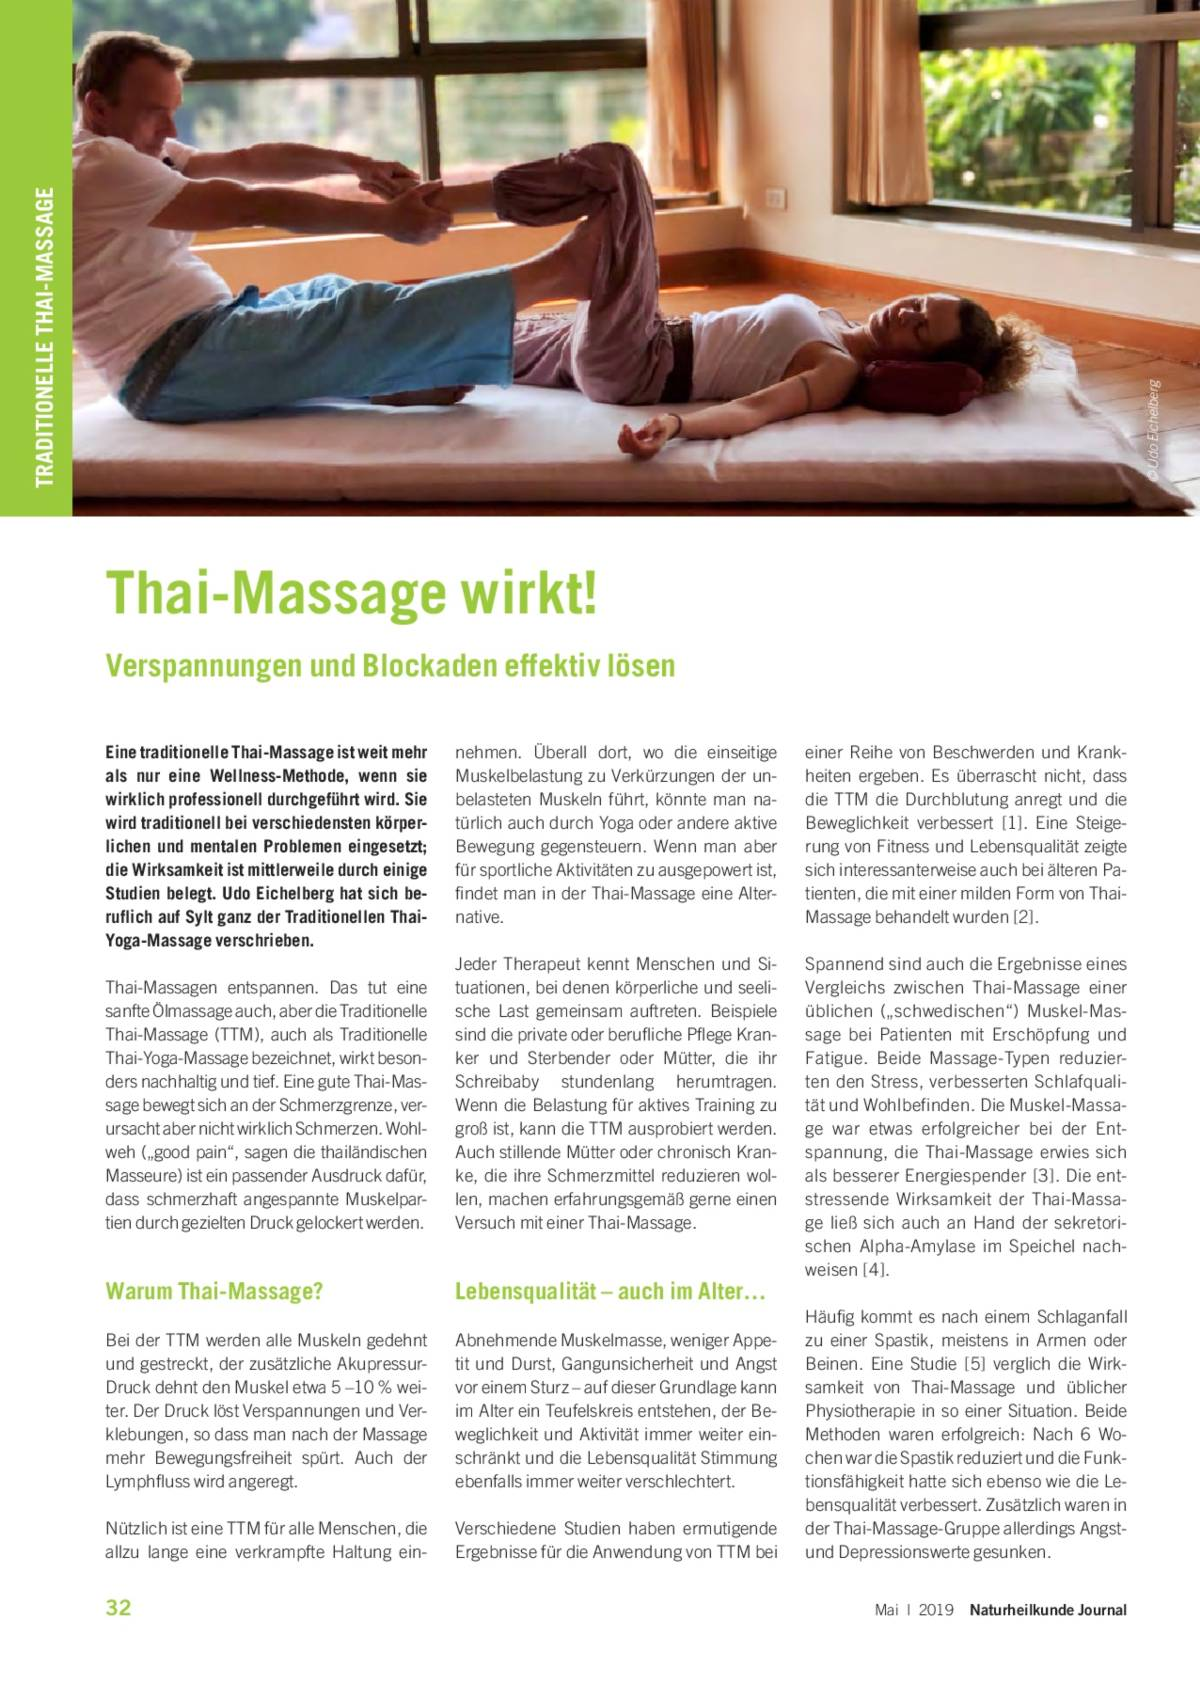 Naturheilkunde Journal Traditionelle Thaimassage-001